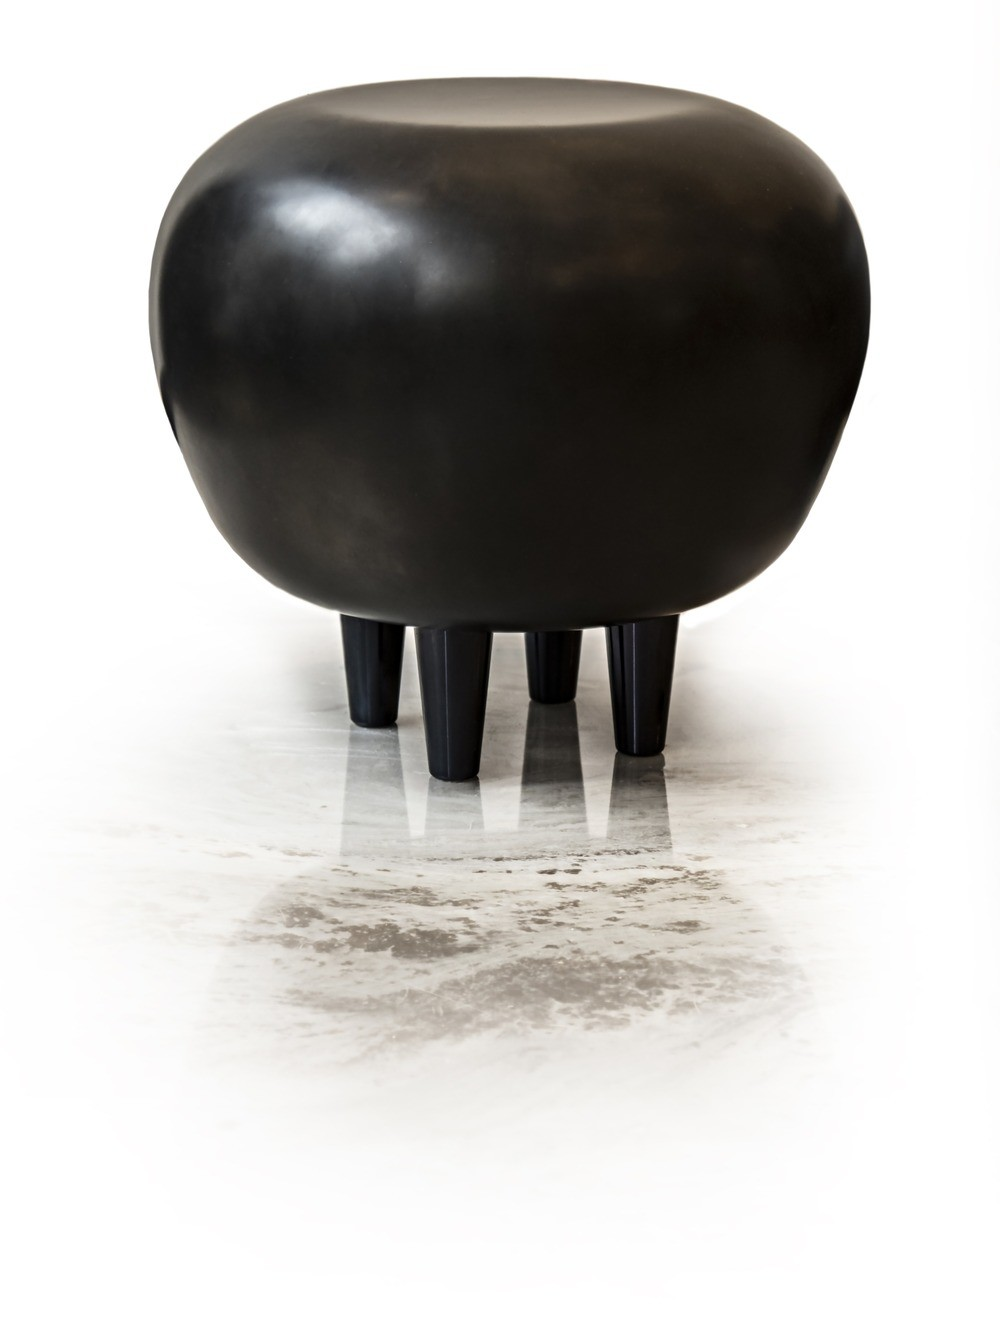 Black Pouf by Mettlesome Design, imagem cedida por Mettlesome Design (França)